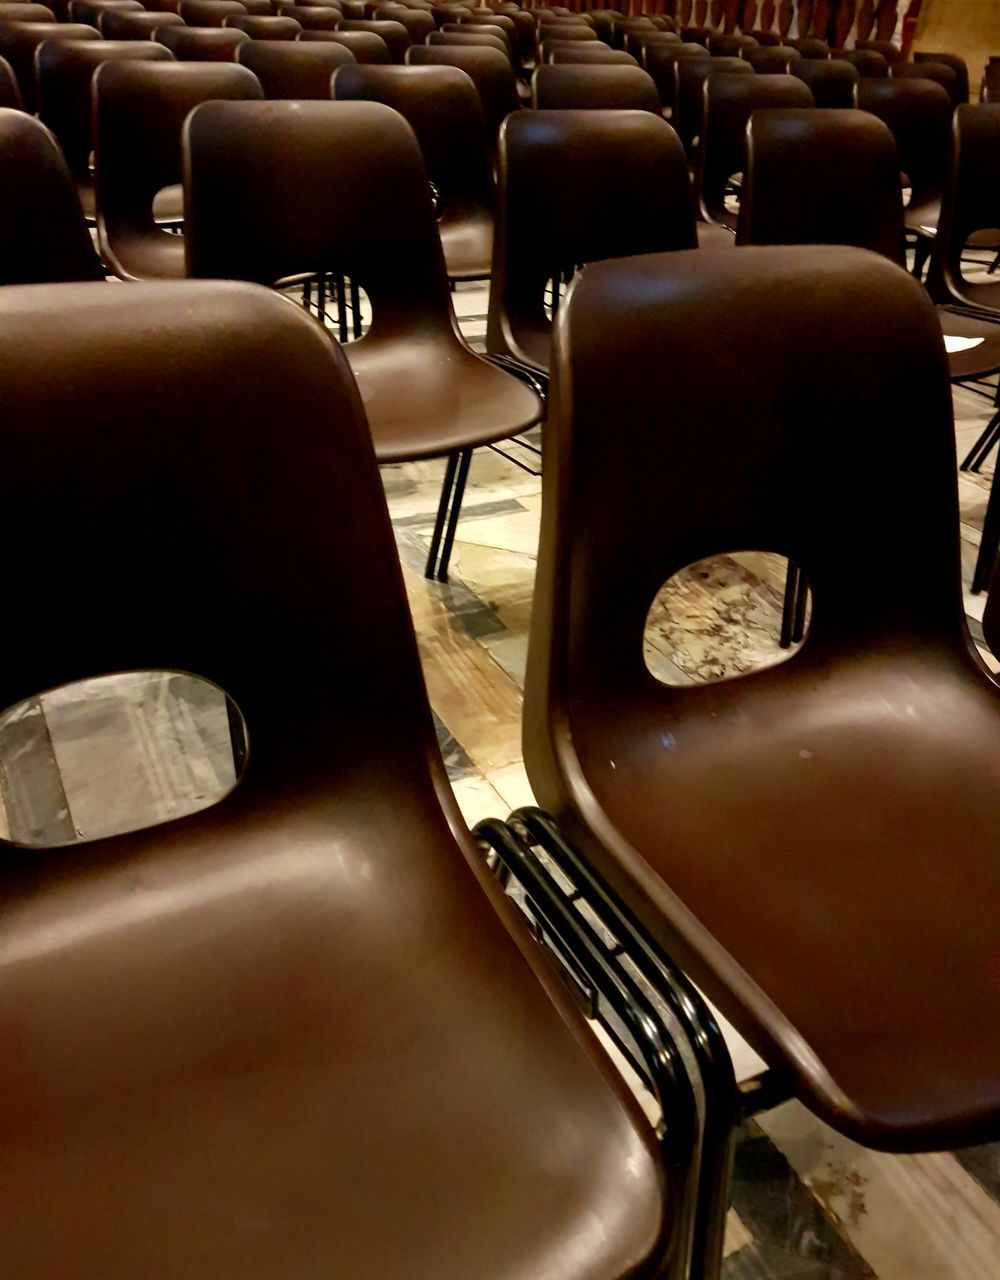 in a row, chair, empty, seat, arts culture and entertainment, no people, absence, indoors, auditorium, close-up, day